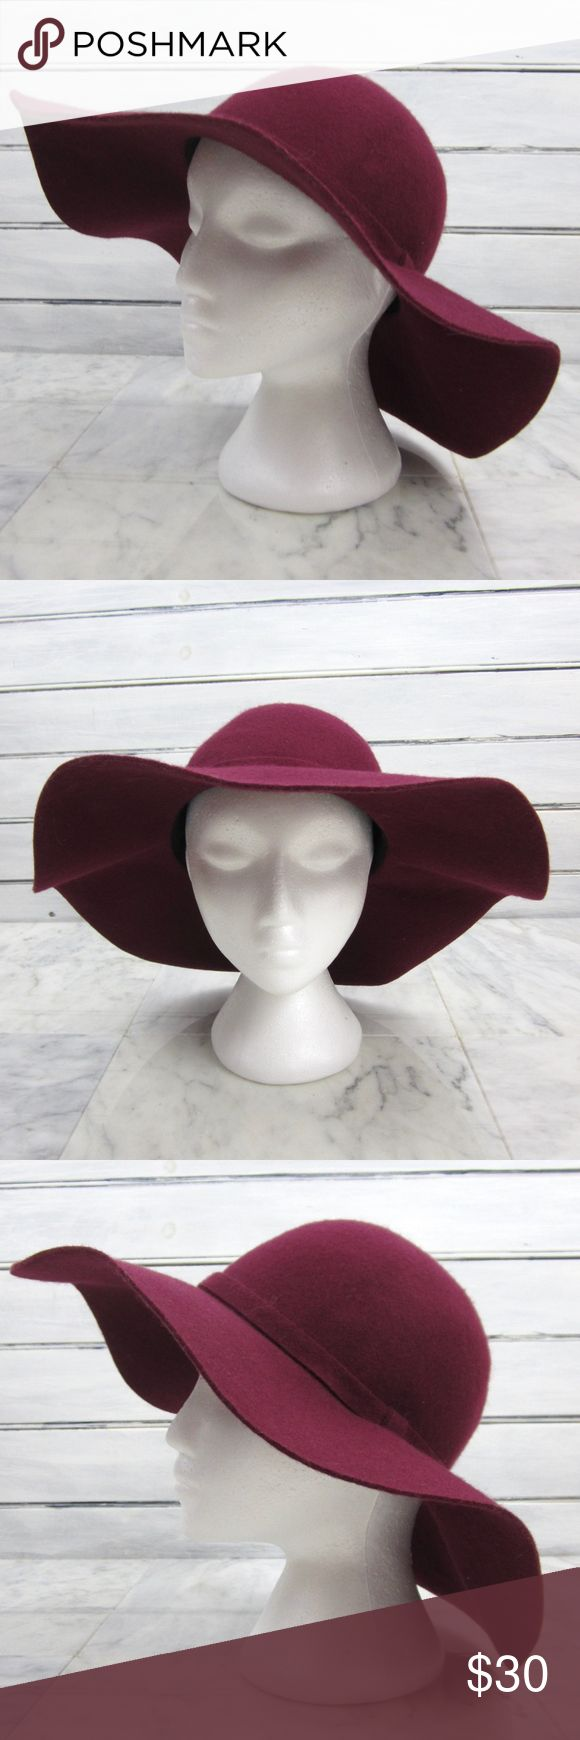 "Burgundy Wool Wide Brim Floppy Oversize Cloche Hat Ladies burgundy 100% felt wool wide brim floppy cloche hat! Features a rounded upper, a 4 3/8"" brim and a subtle banding at the upper. Sits beautifully, classic and elegant style! Unlined, 100% wool felt, beautiful dark burgundy purple in color. Unbranded, made in China.  Size is marked ""One Size"". Interior circumference measures 22"" approximately.   Condition: Excellent condition overall, only worn a few times-no visible signs of notable…"